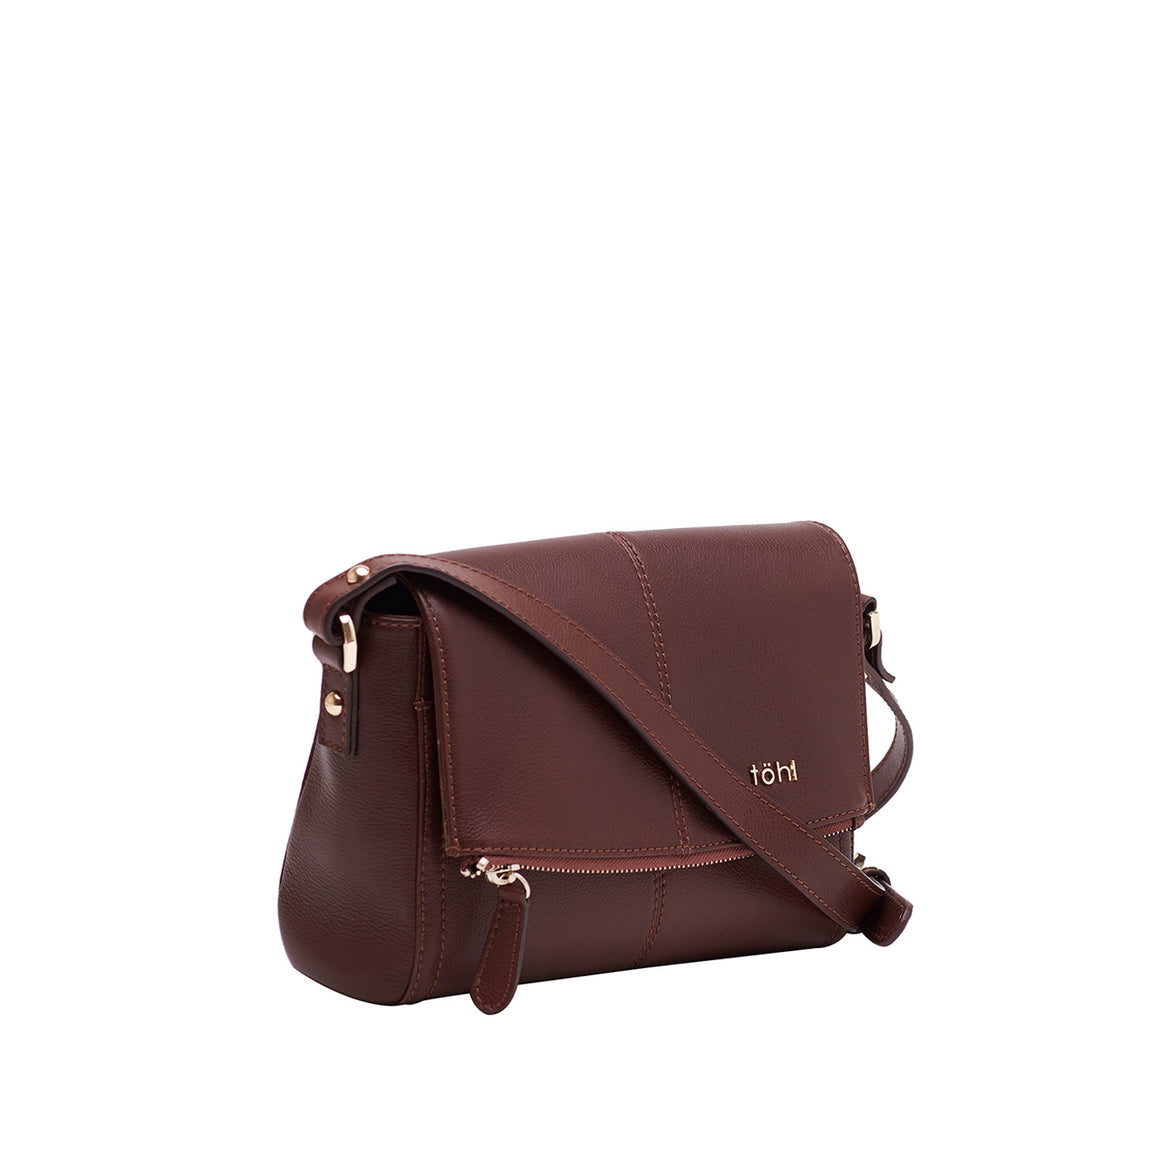 SG 0001 - TOHL MADISON WOMEN'S DAY BAG - CHOCO